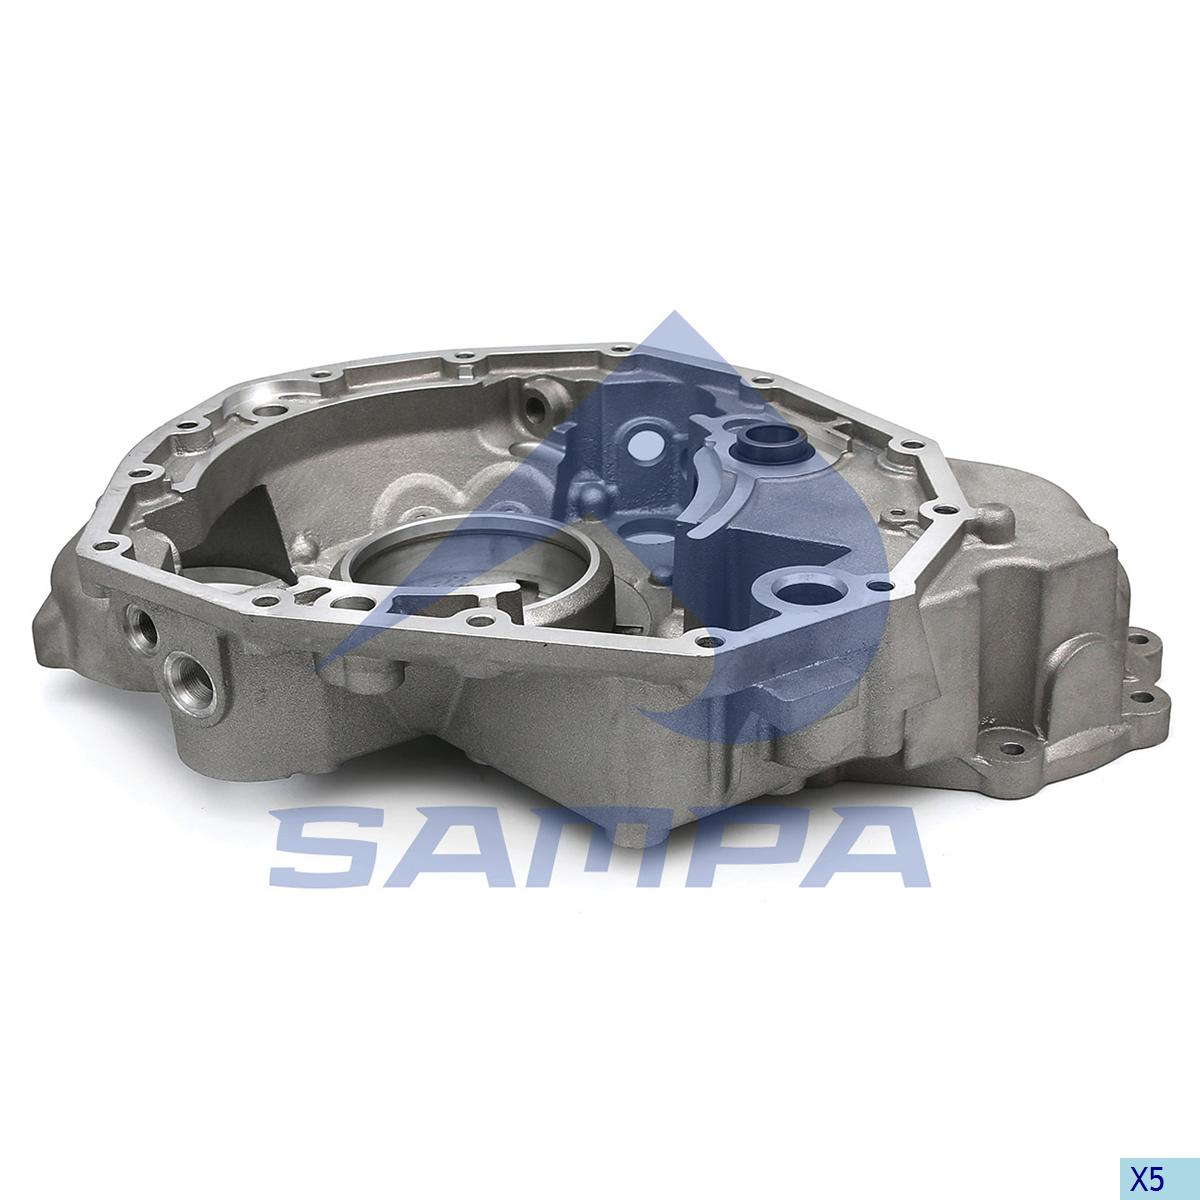 Housing, Flywheel, Scania, Engine